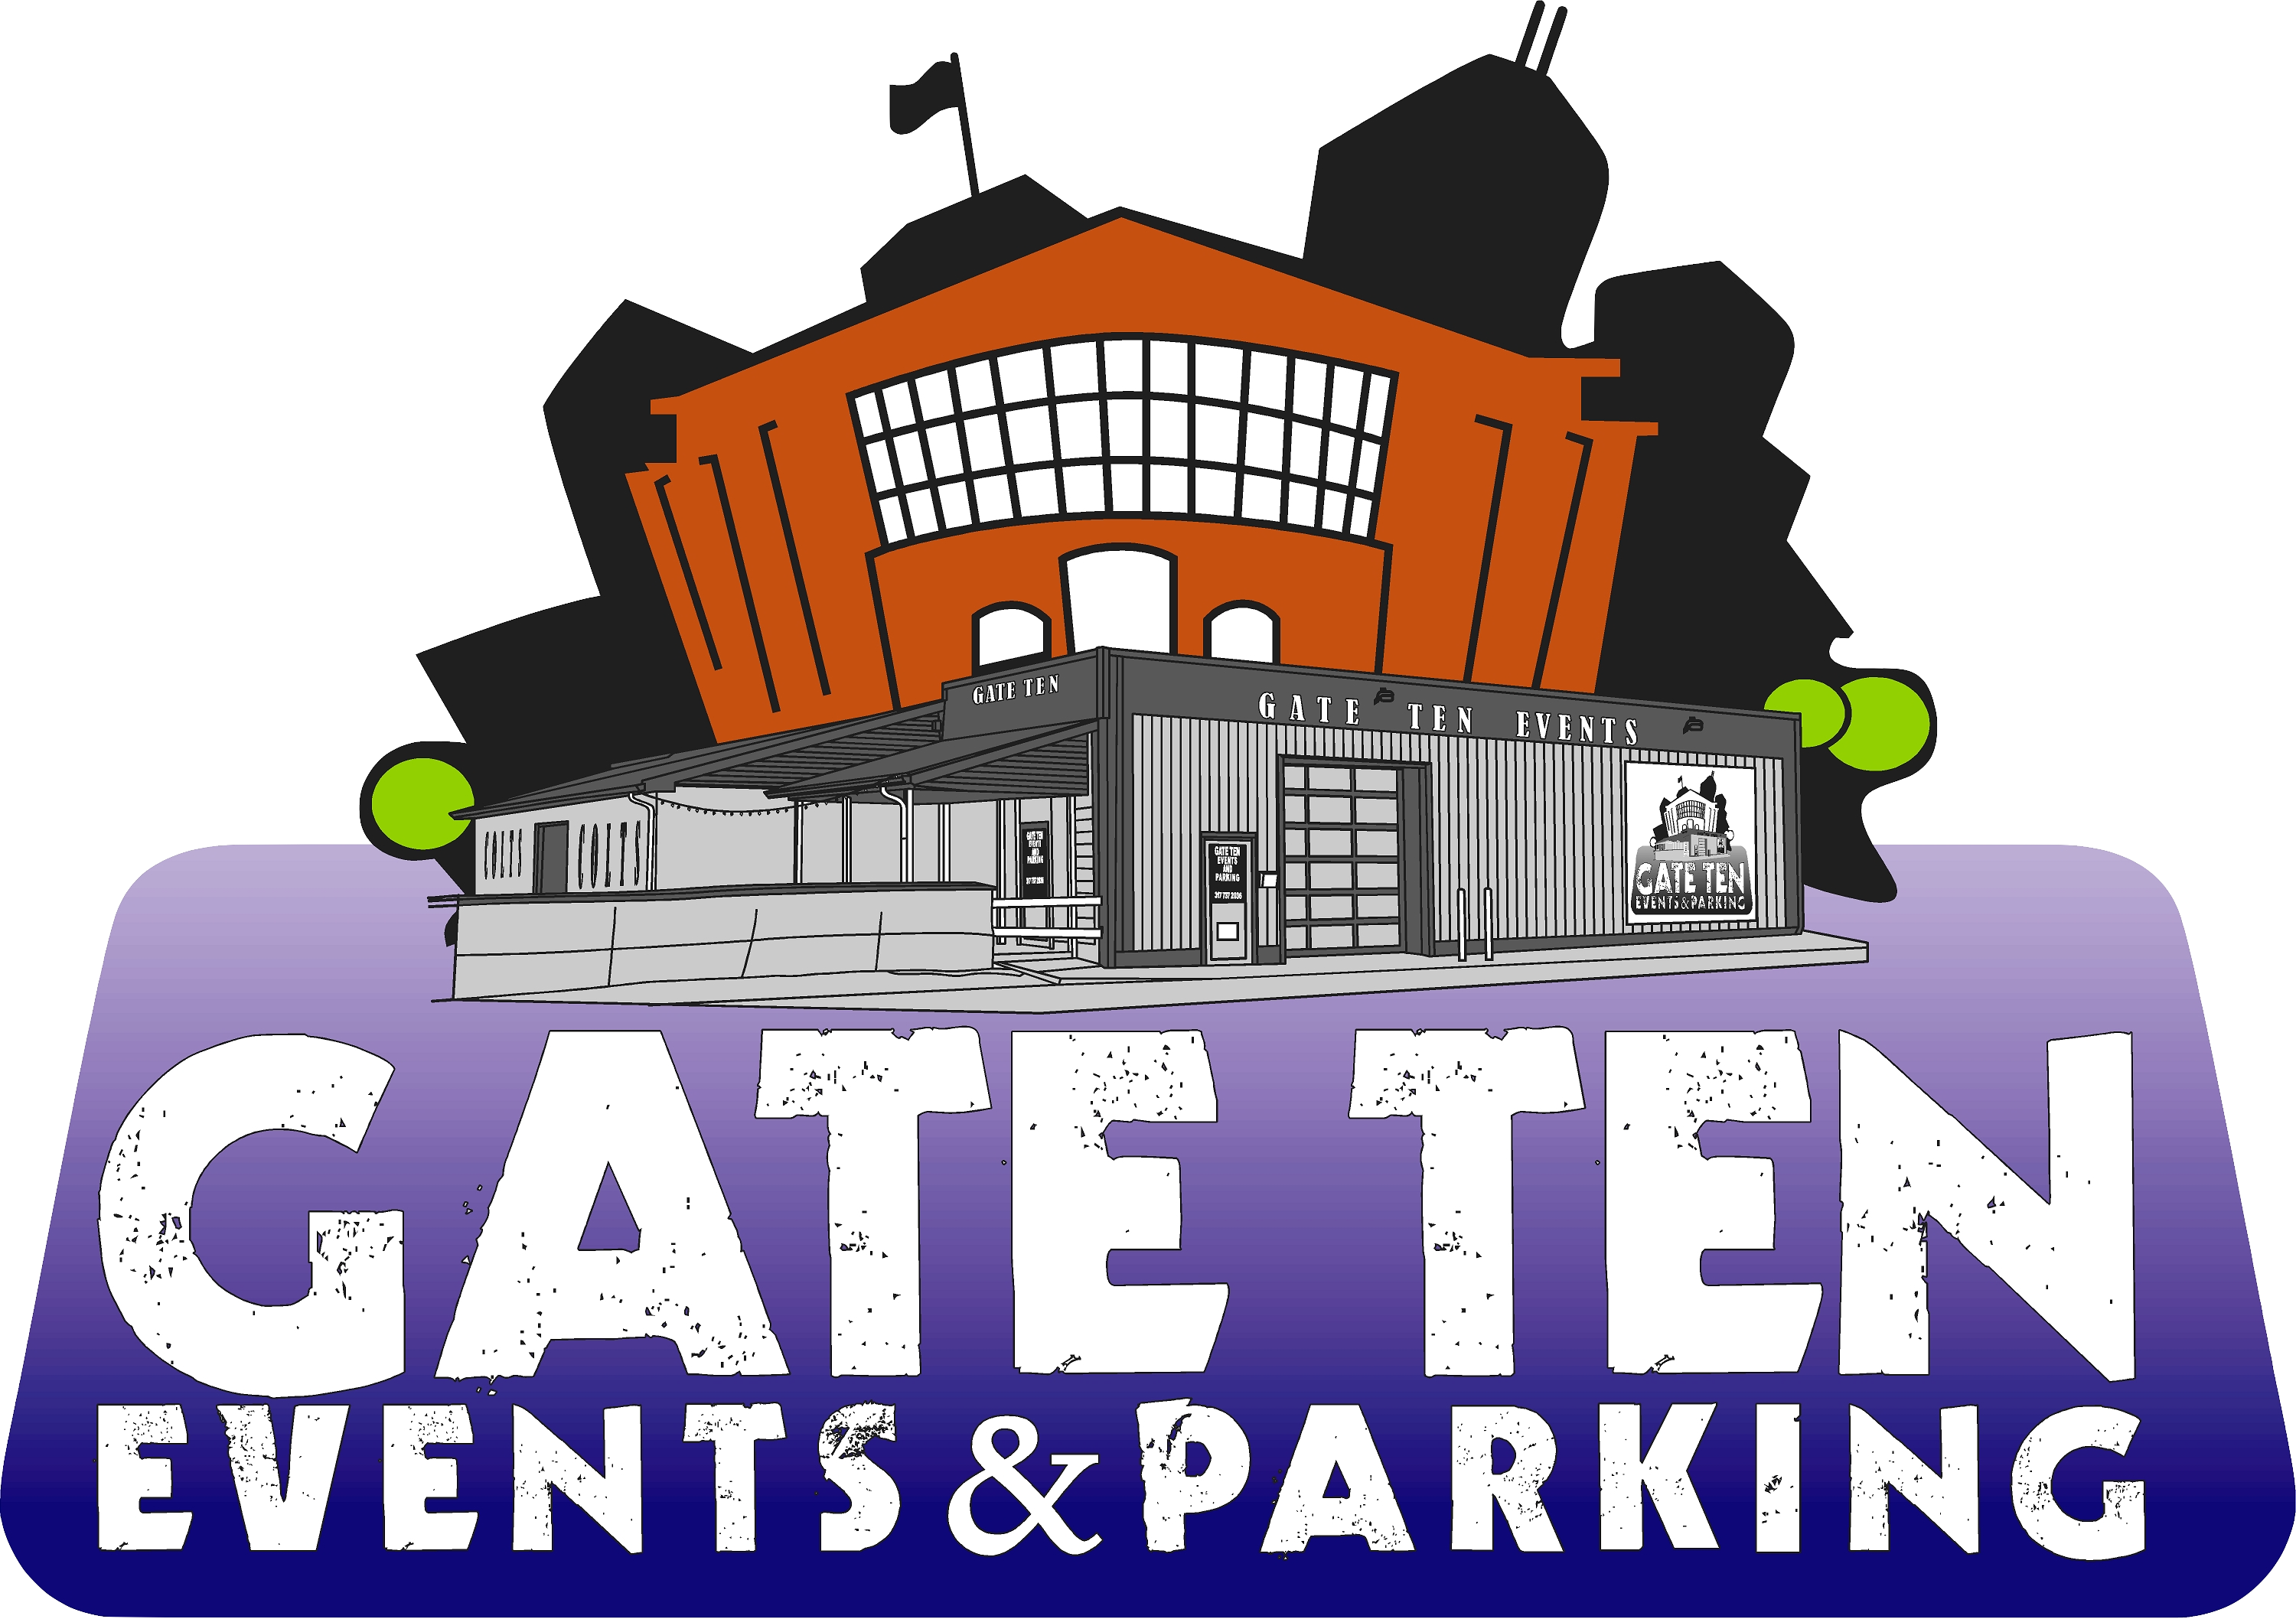 Gate clipart welcome sign. Ten events parking west